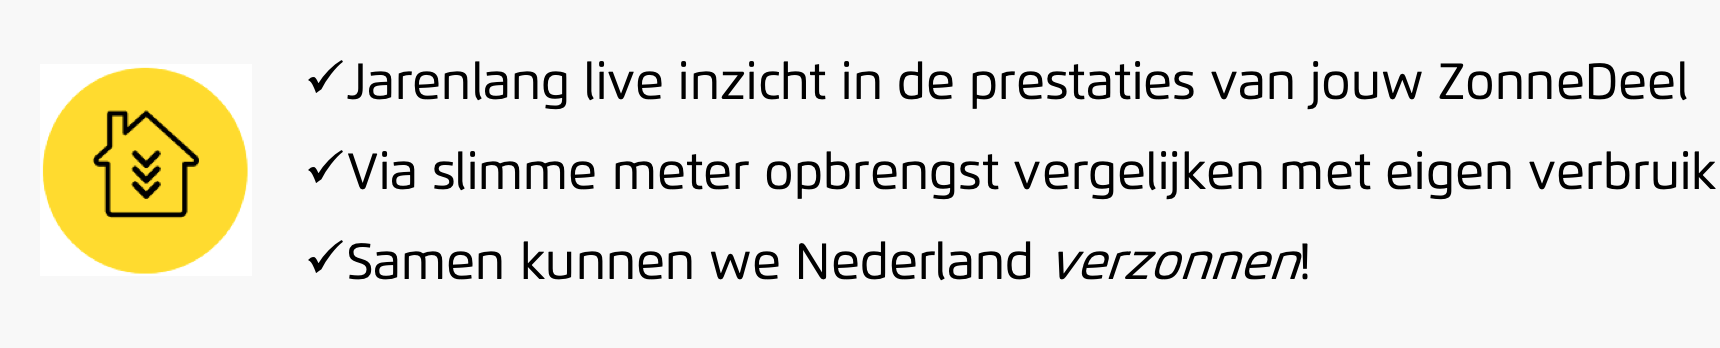 zwolle HWH2.png